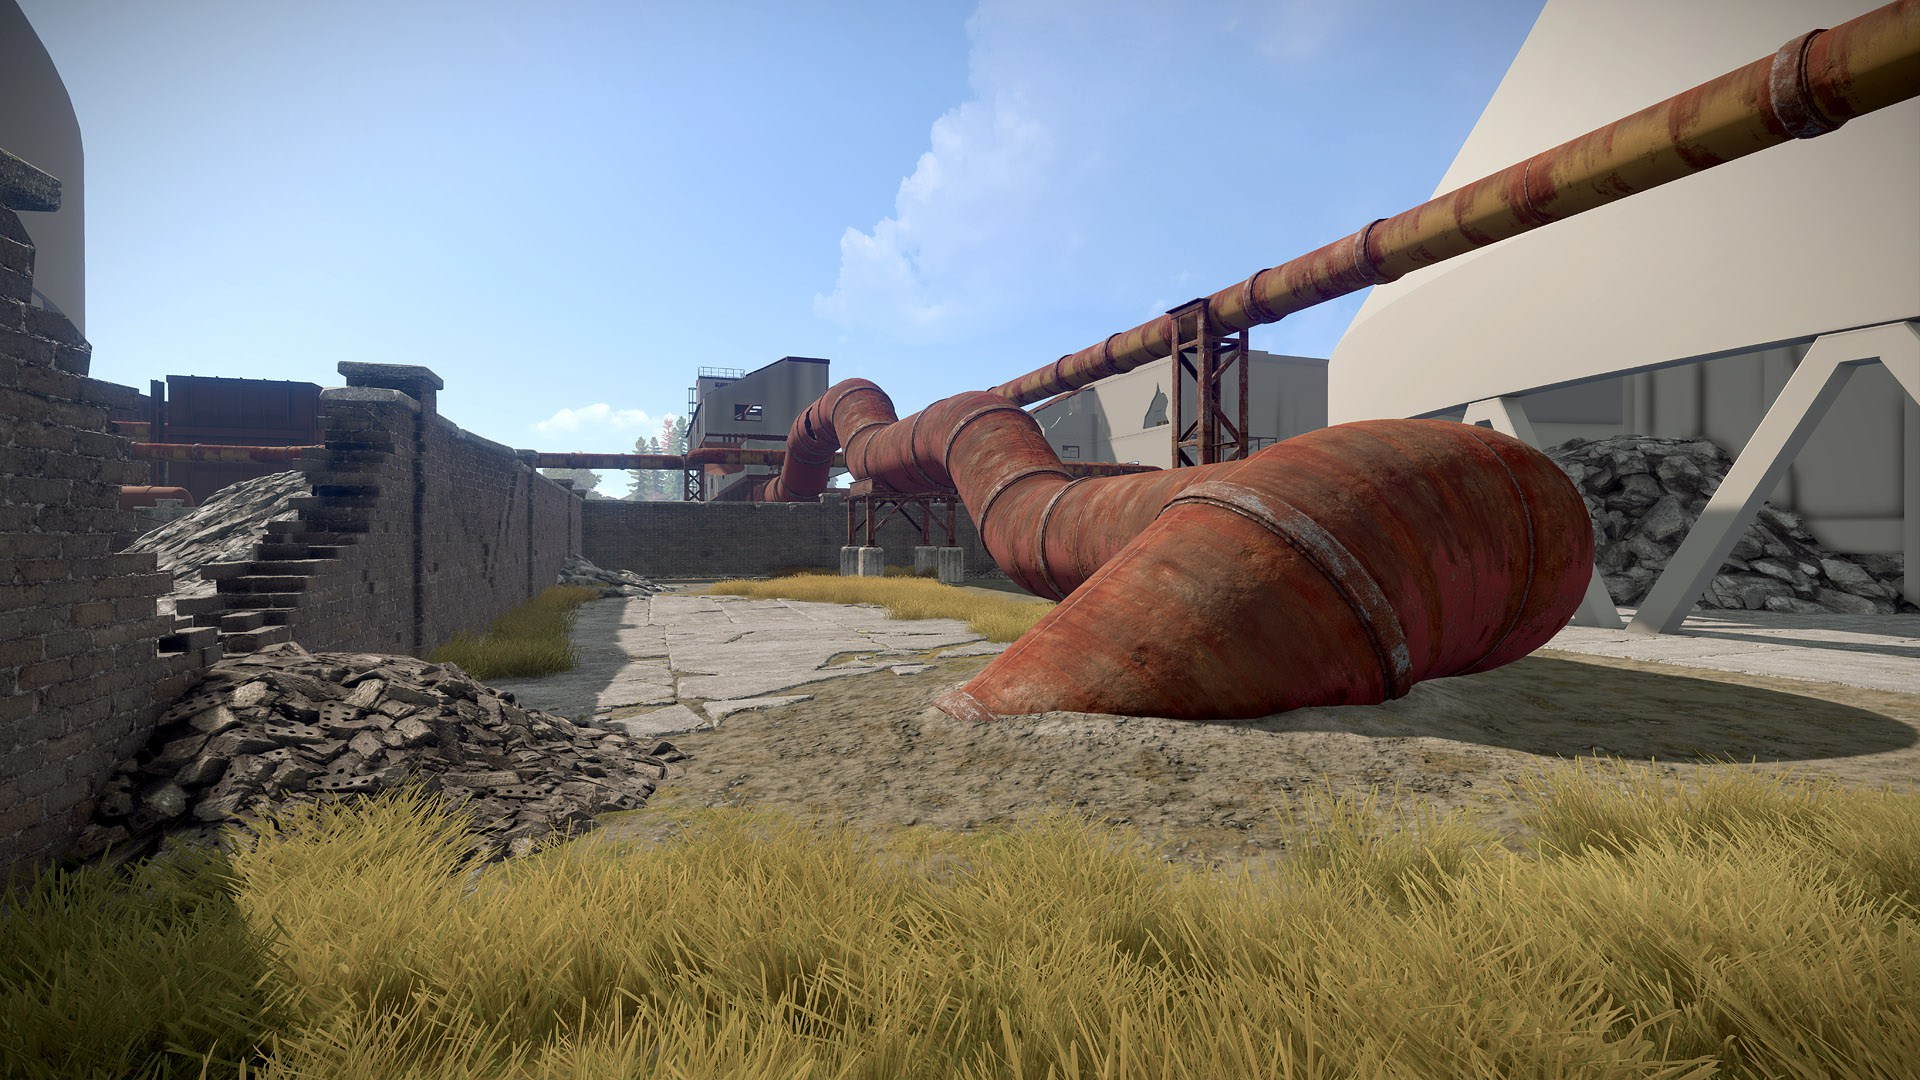 Rohranlage in Rust